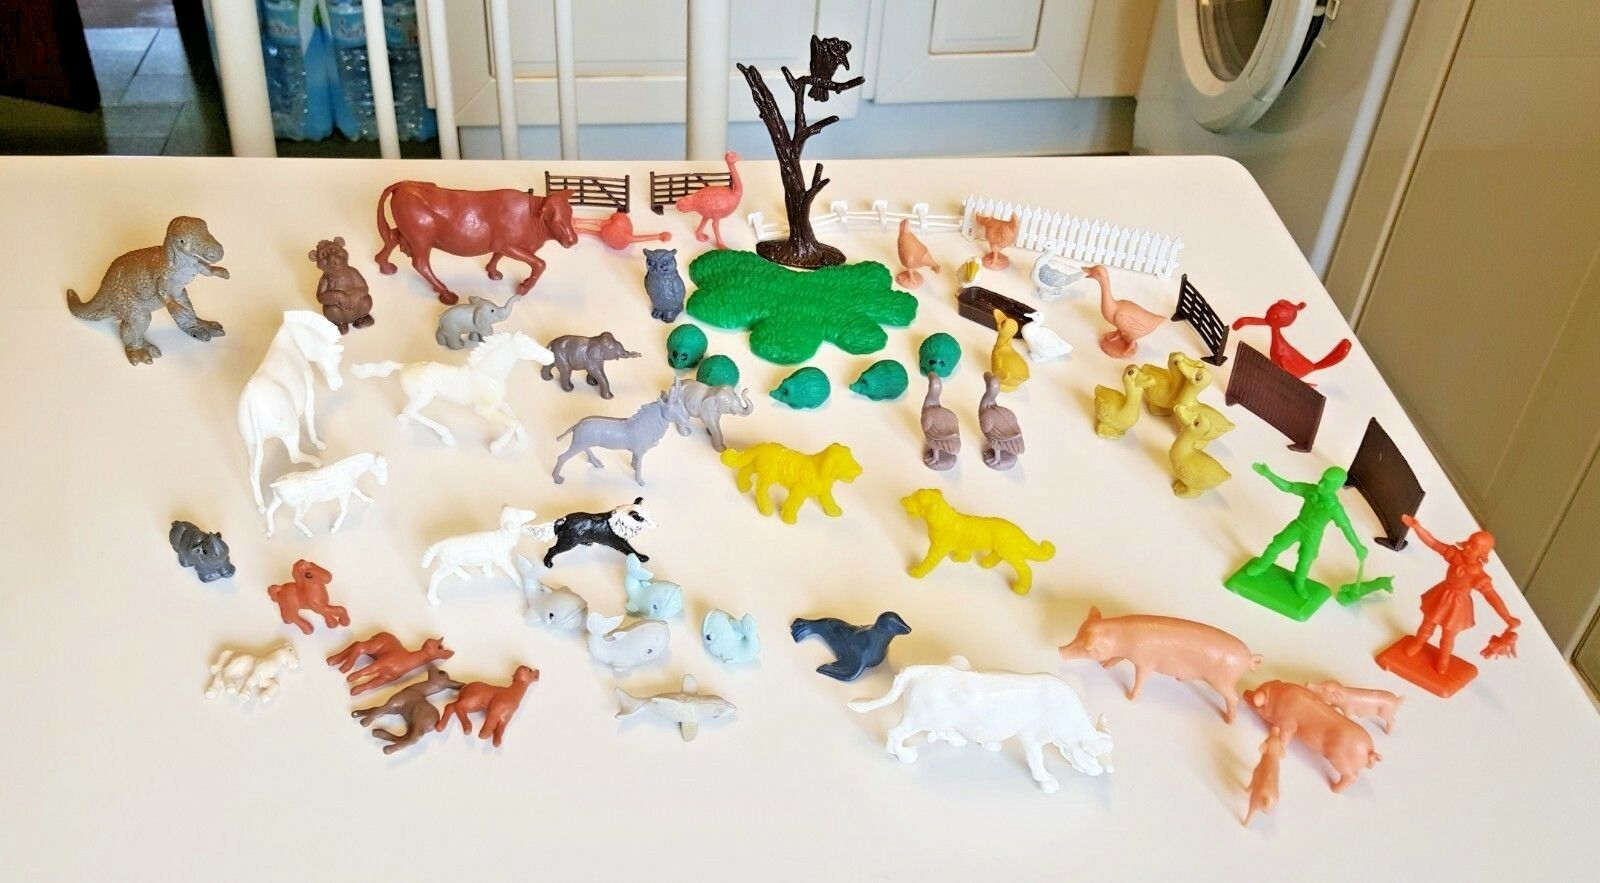 Collection of plastic or rubber animal and farm figures